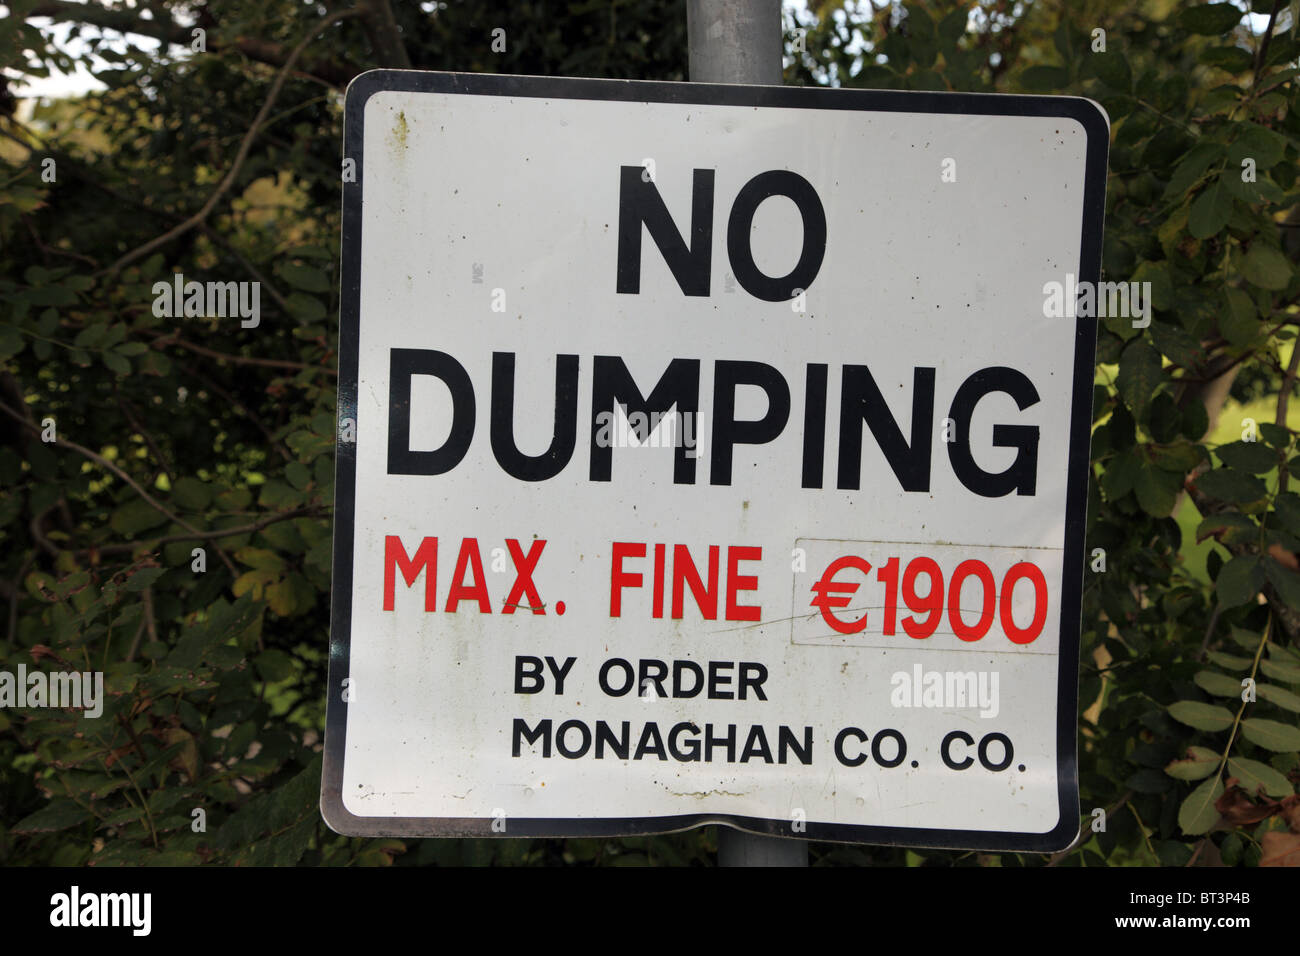 No Dumping sign, Co. Monaghan - Stock Image